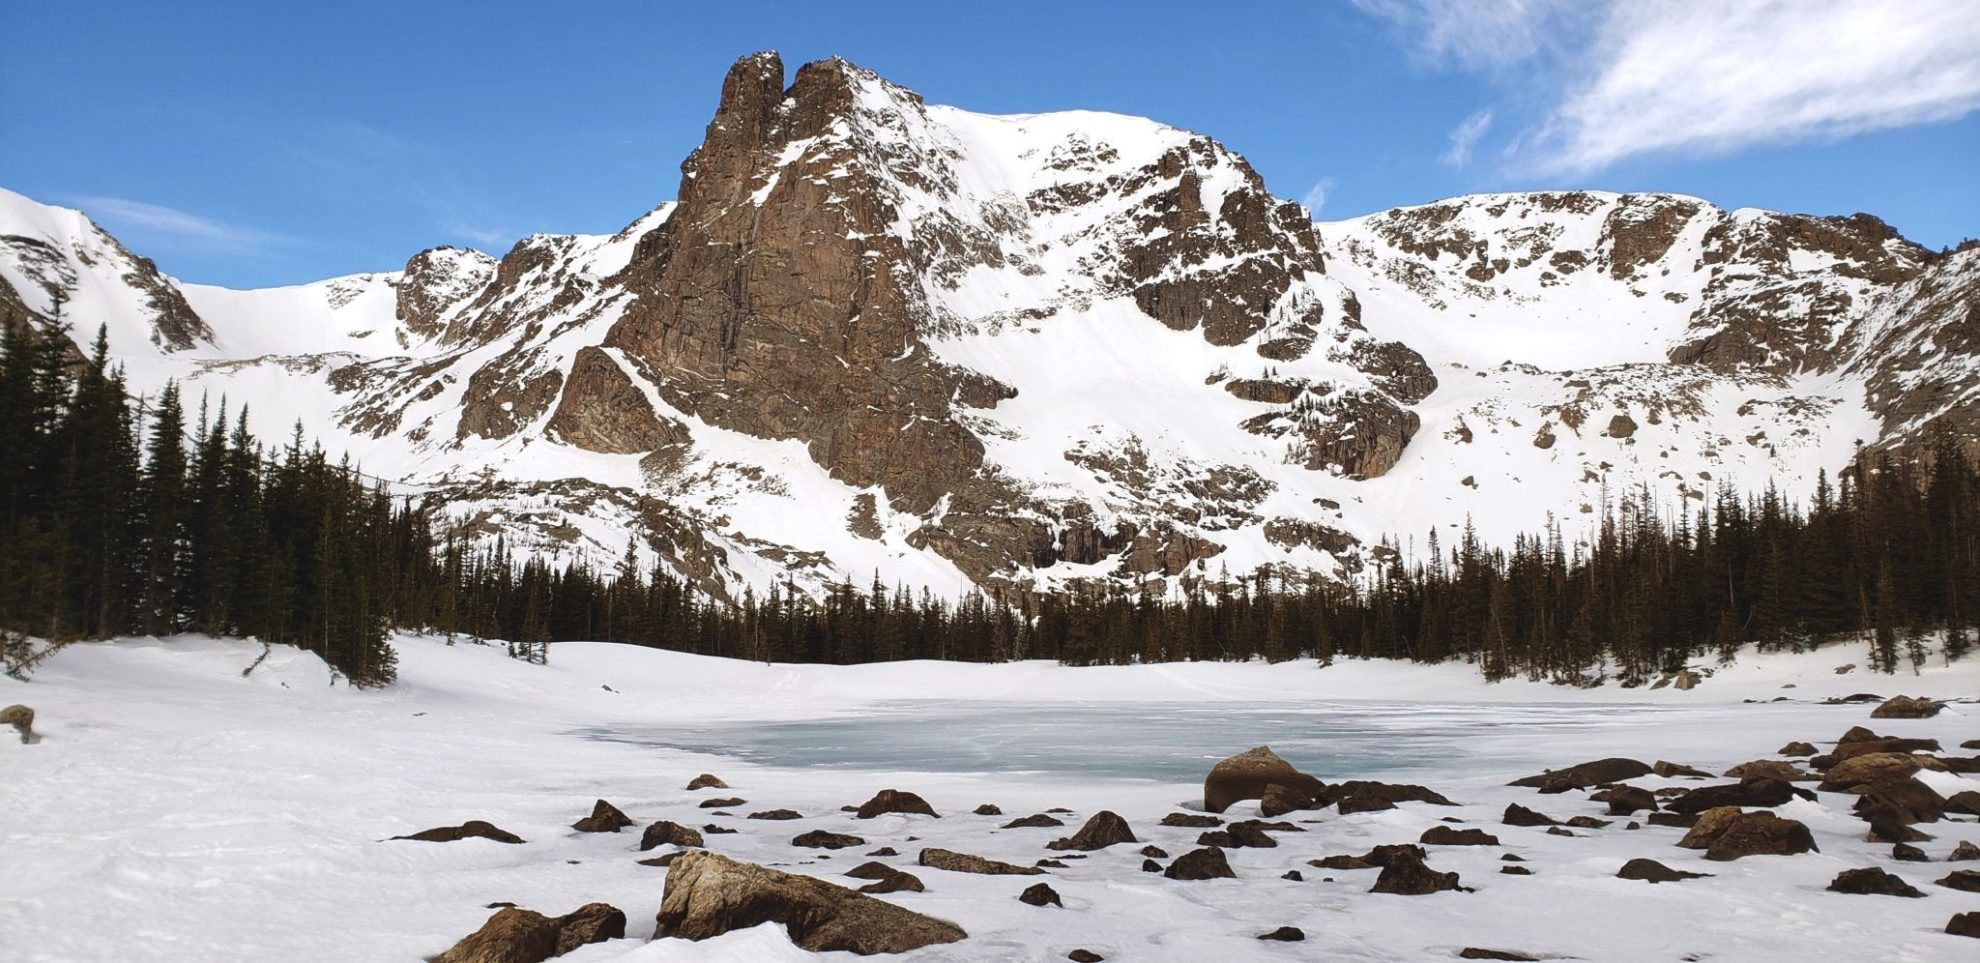 Two Rivers Lake and Notchtop Mountain (12,129')